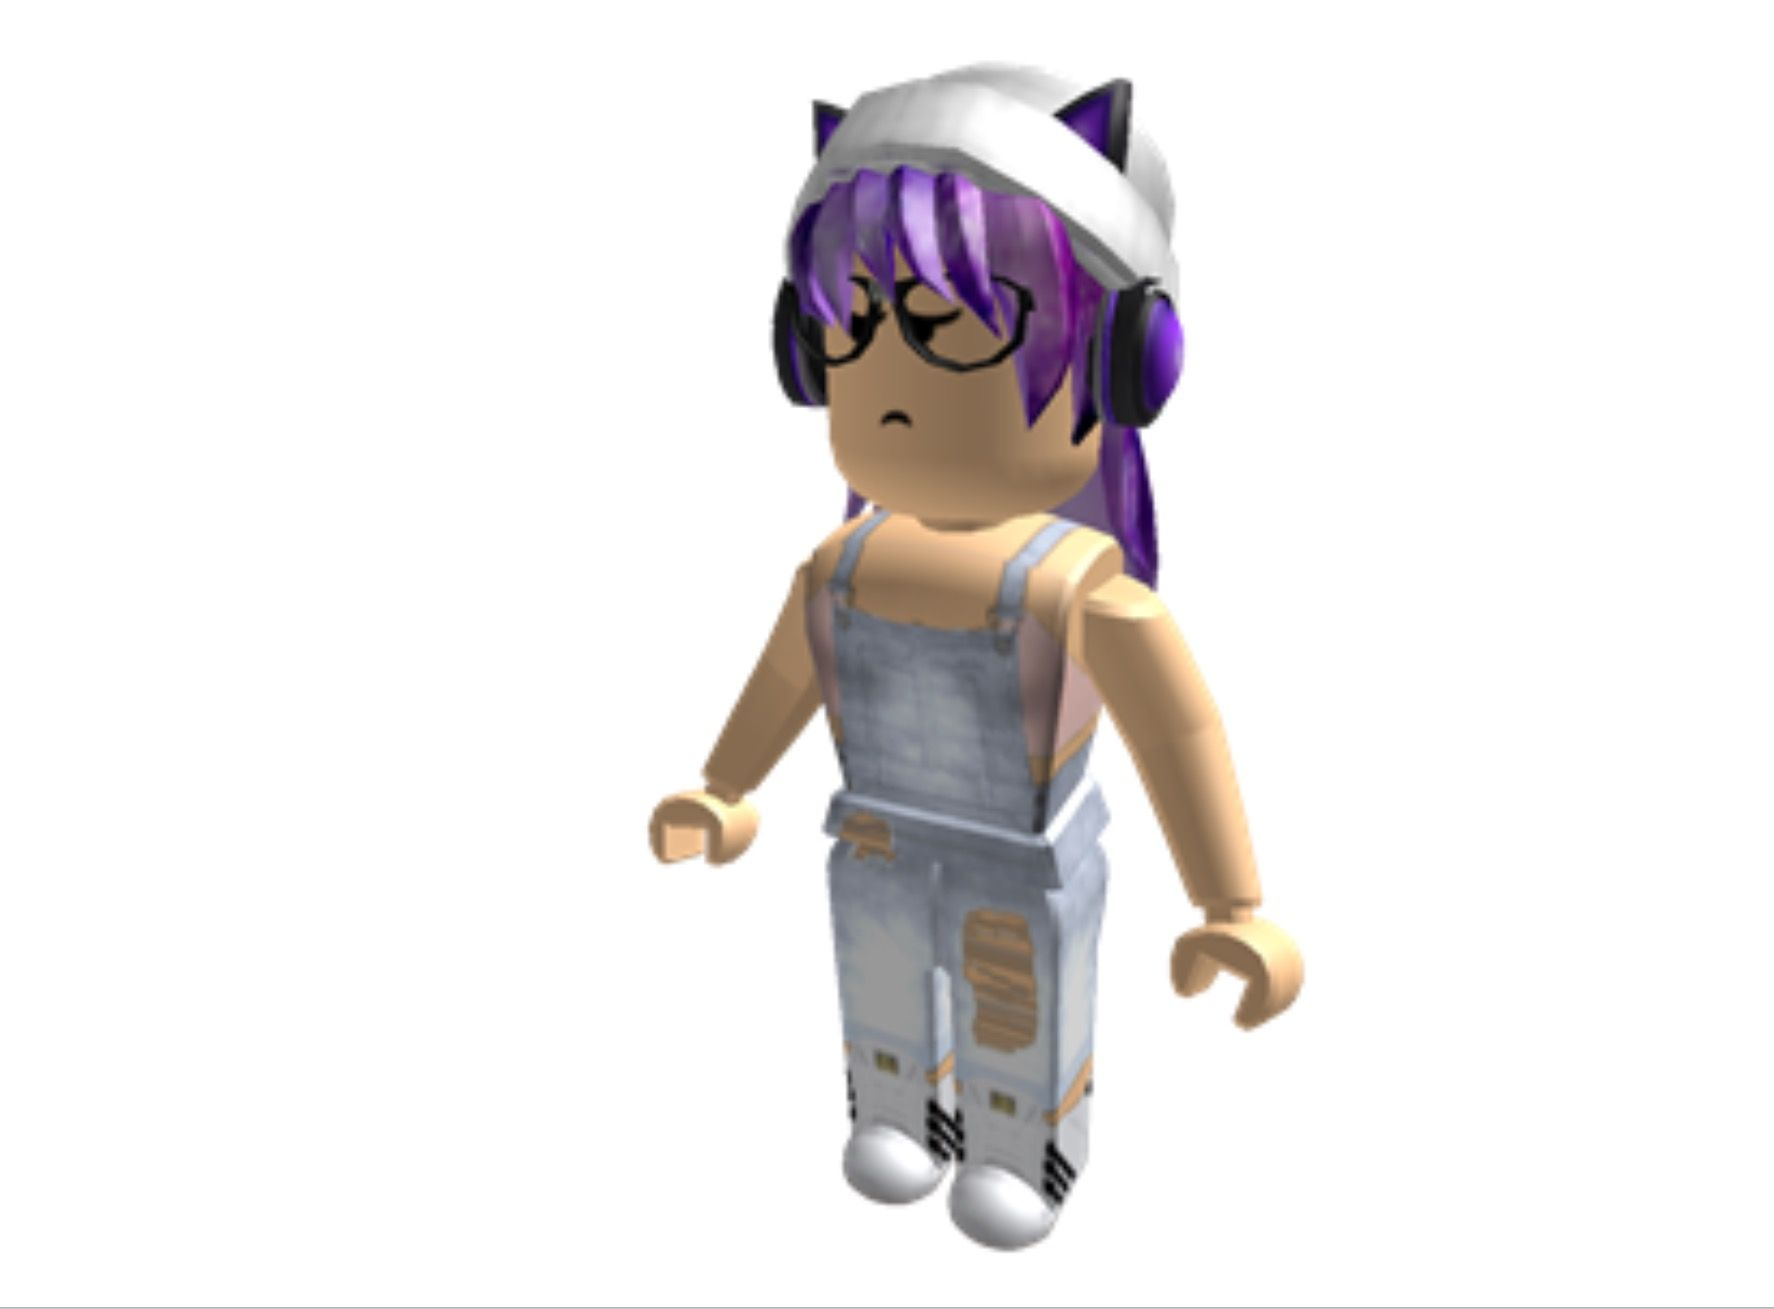 Playrainbowcake Roblox Avatar Check Her Yt Rainbowcake Time Roblox Animation Roblox Roblox Pictures